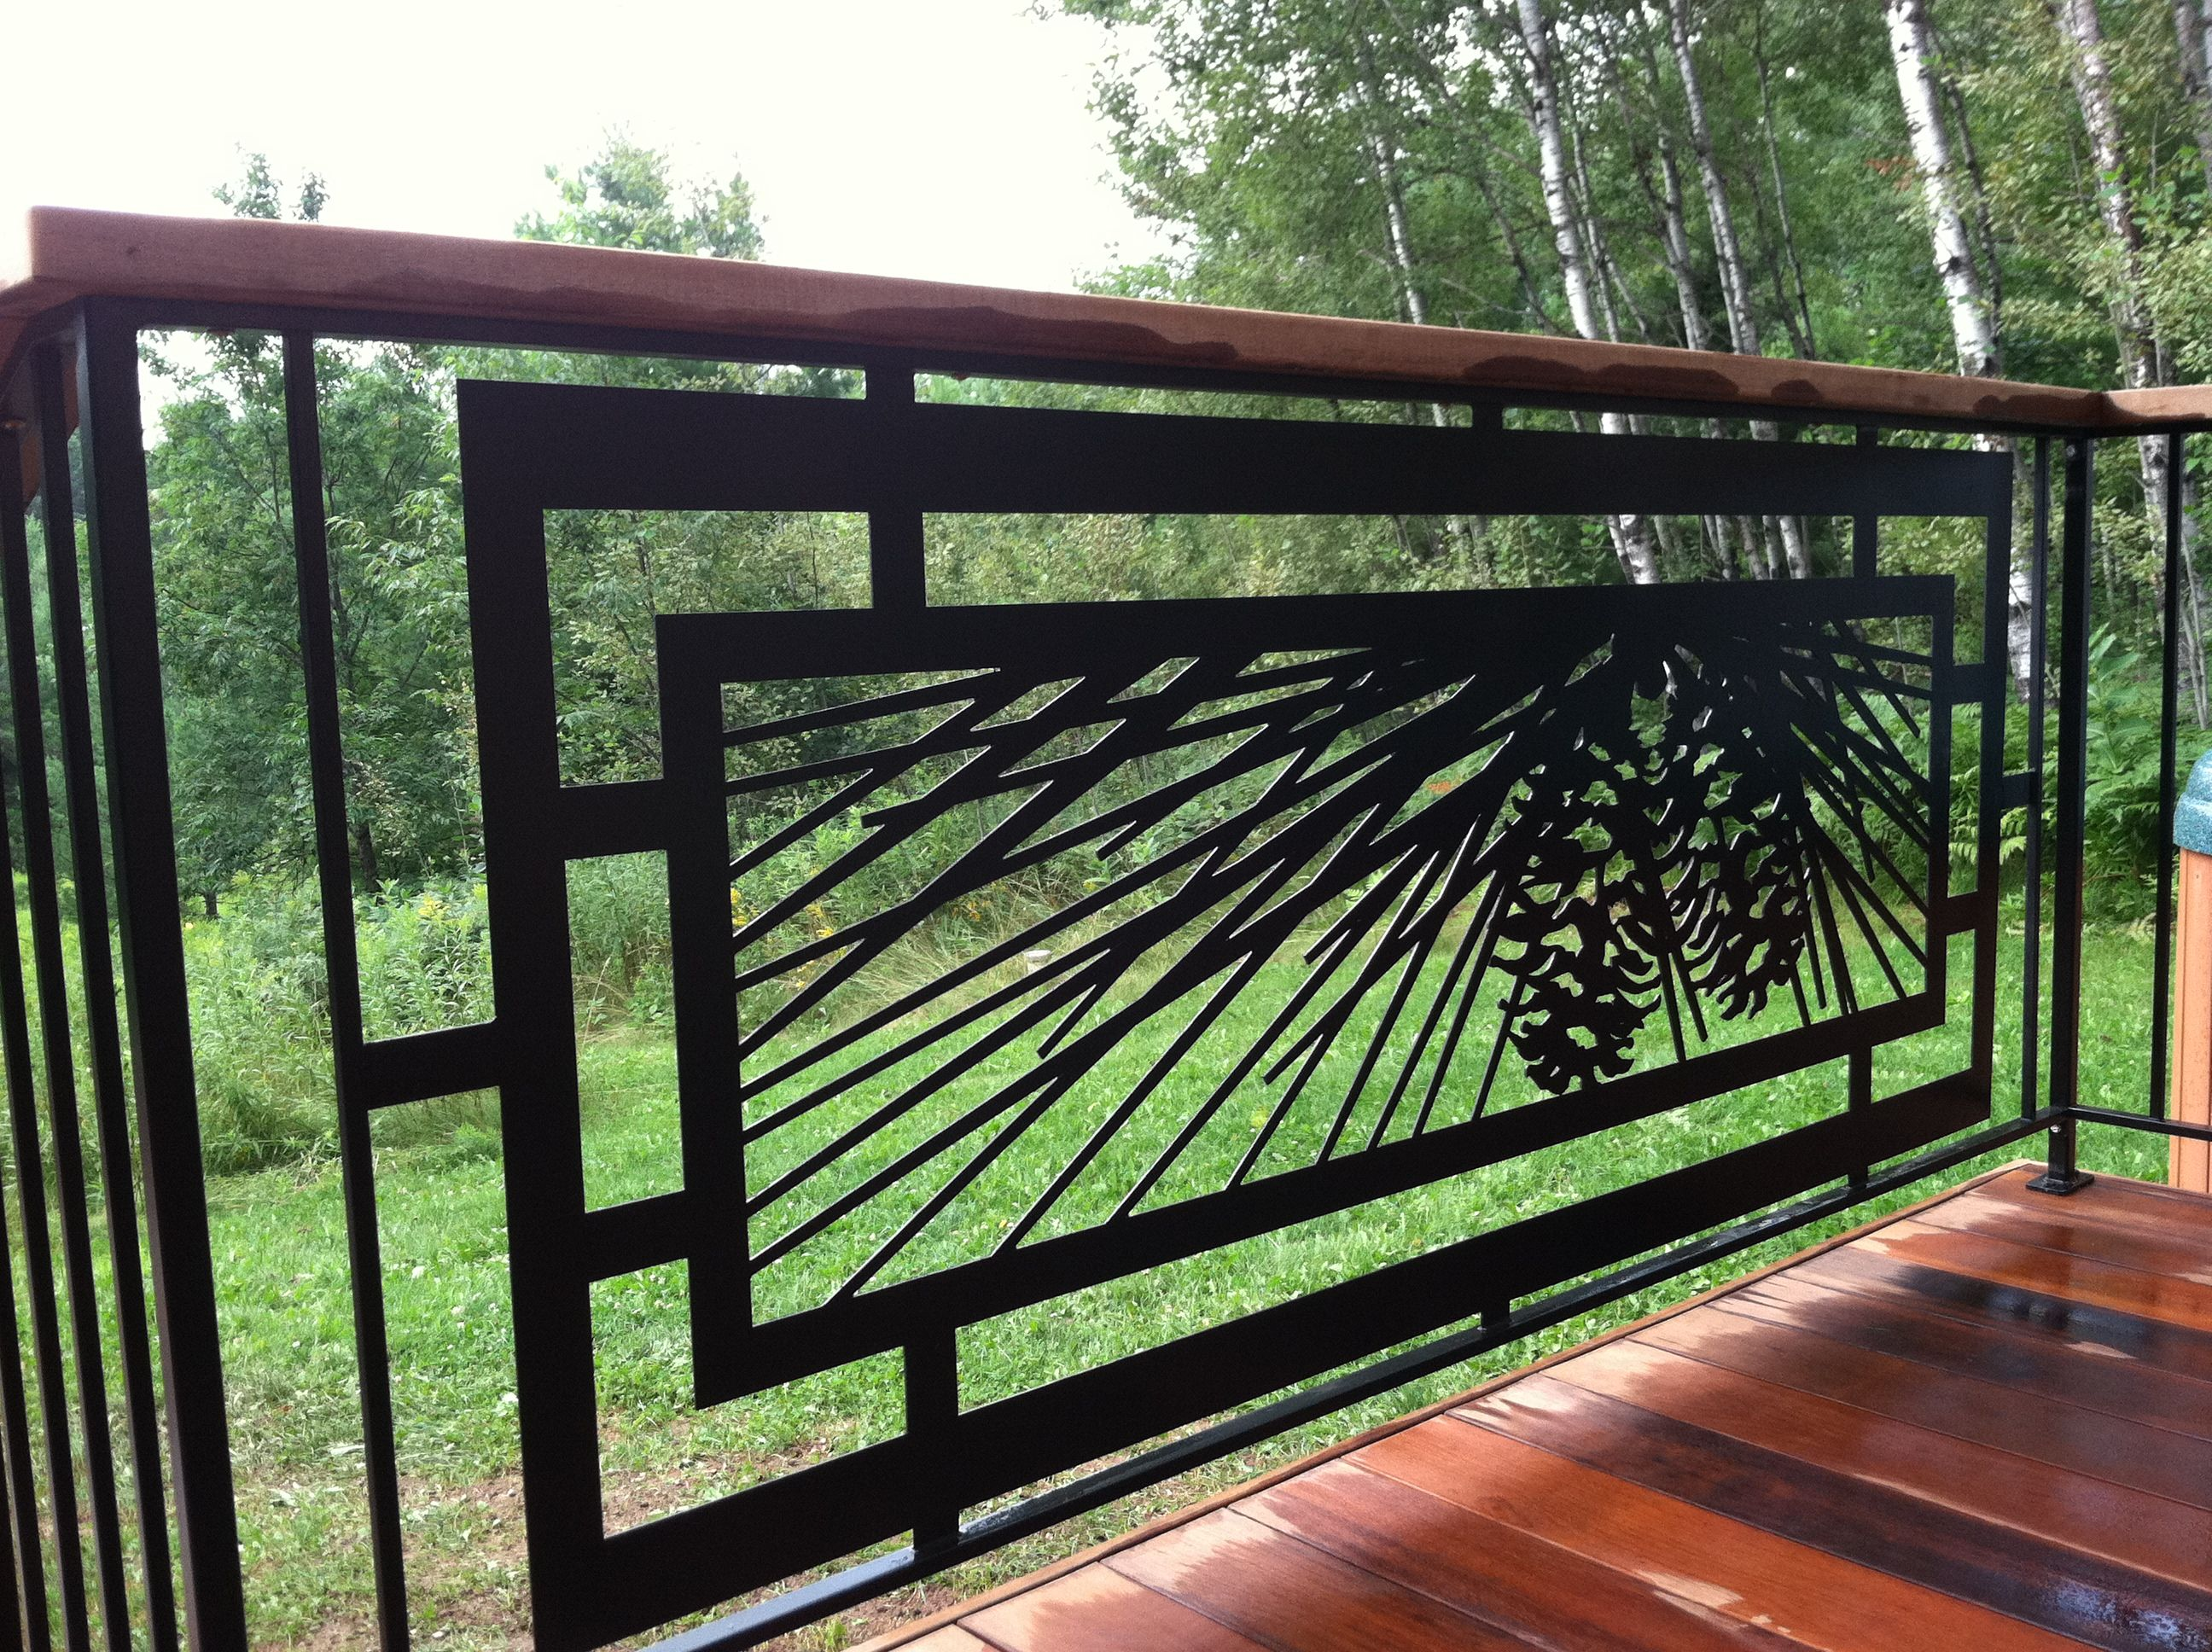 Modern Pinecone Railing For Outdoor Deck Patio Or Hot